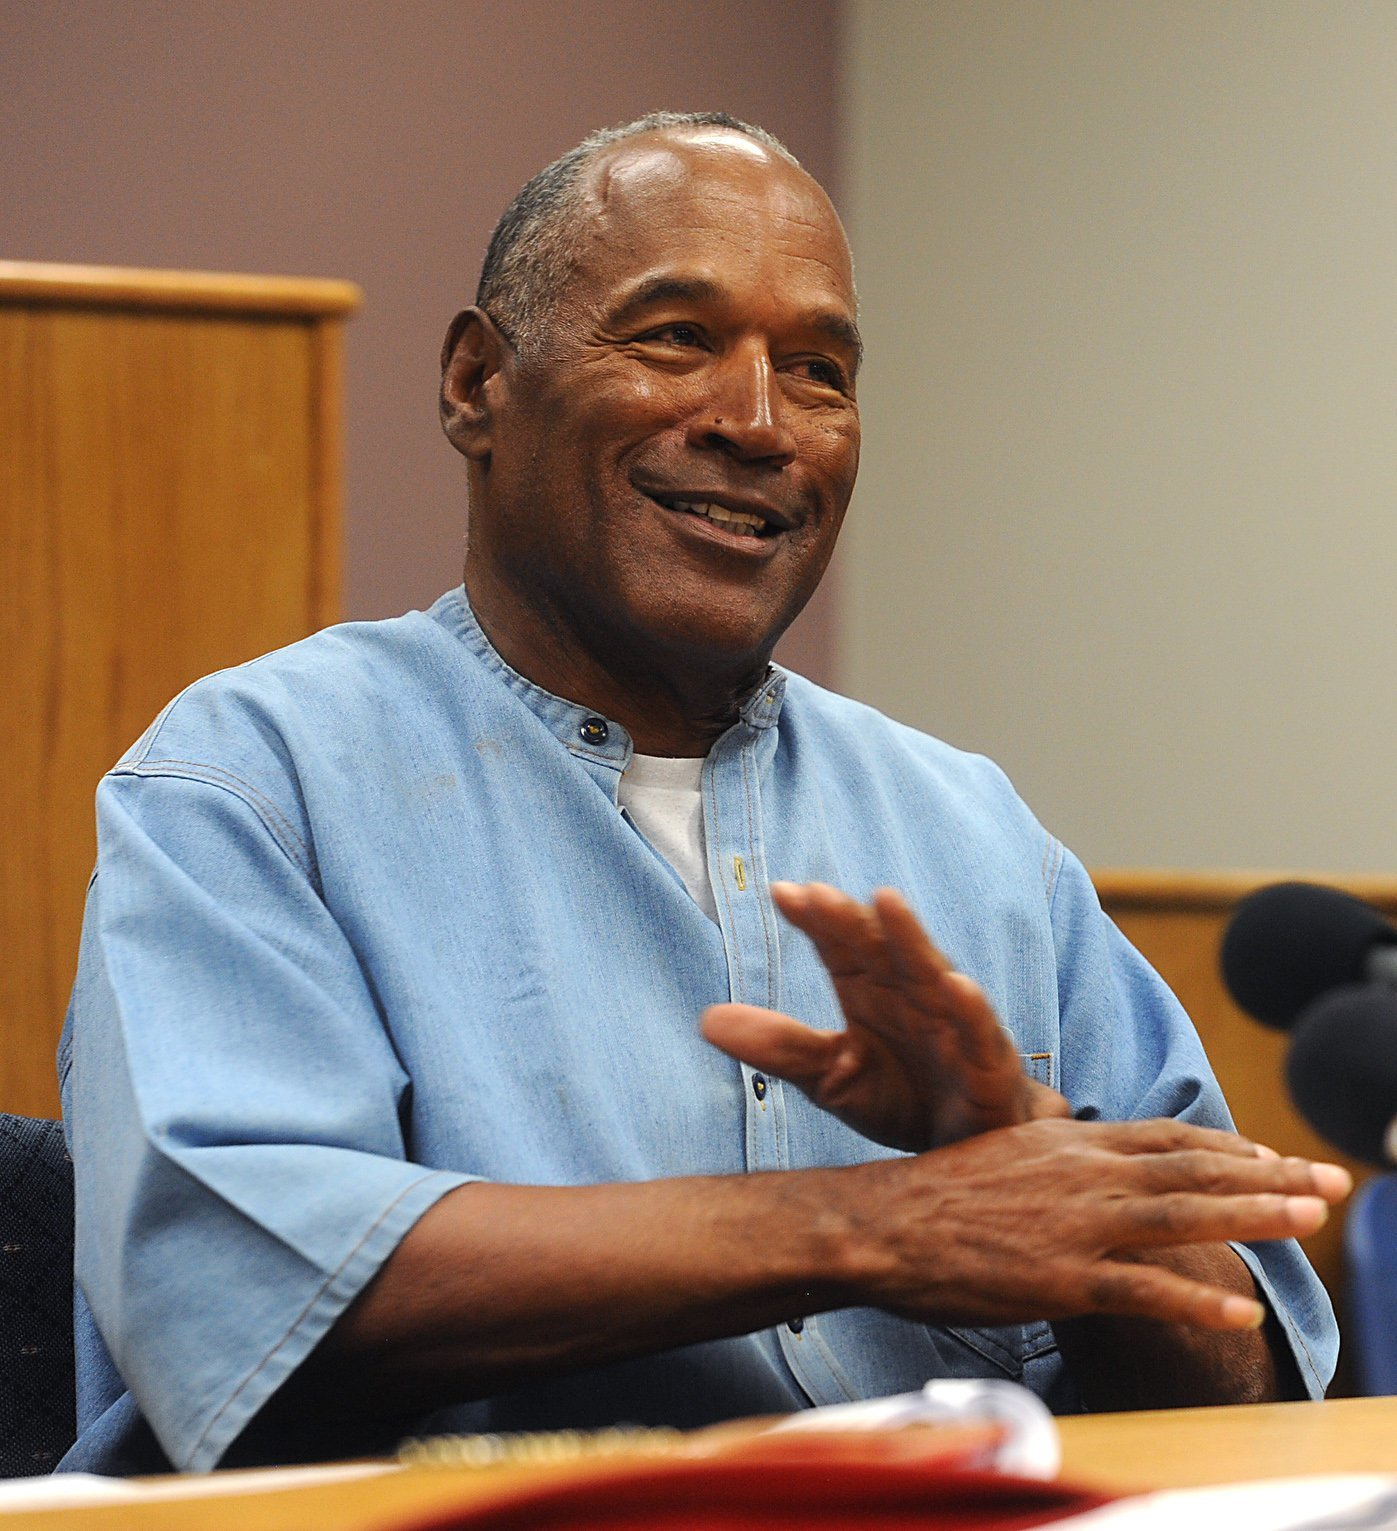 O.J. Simpson after a parole hearing at Lovelock Correctional Center in Lovelock, Nevada, U.S. on July 20, 2017.   Photo: Getty Images